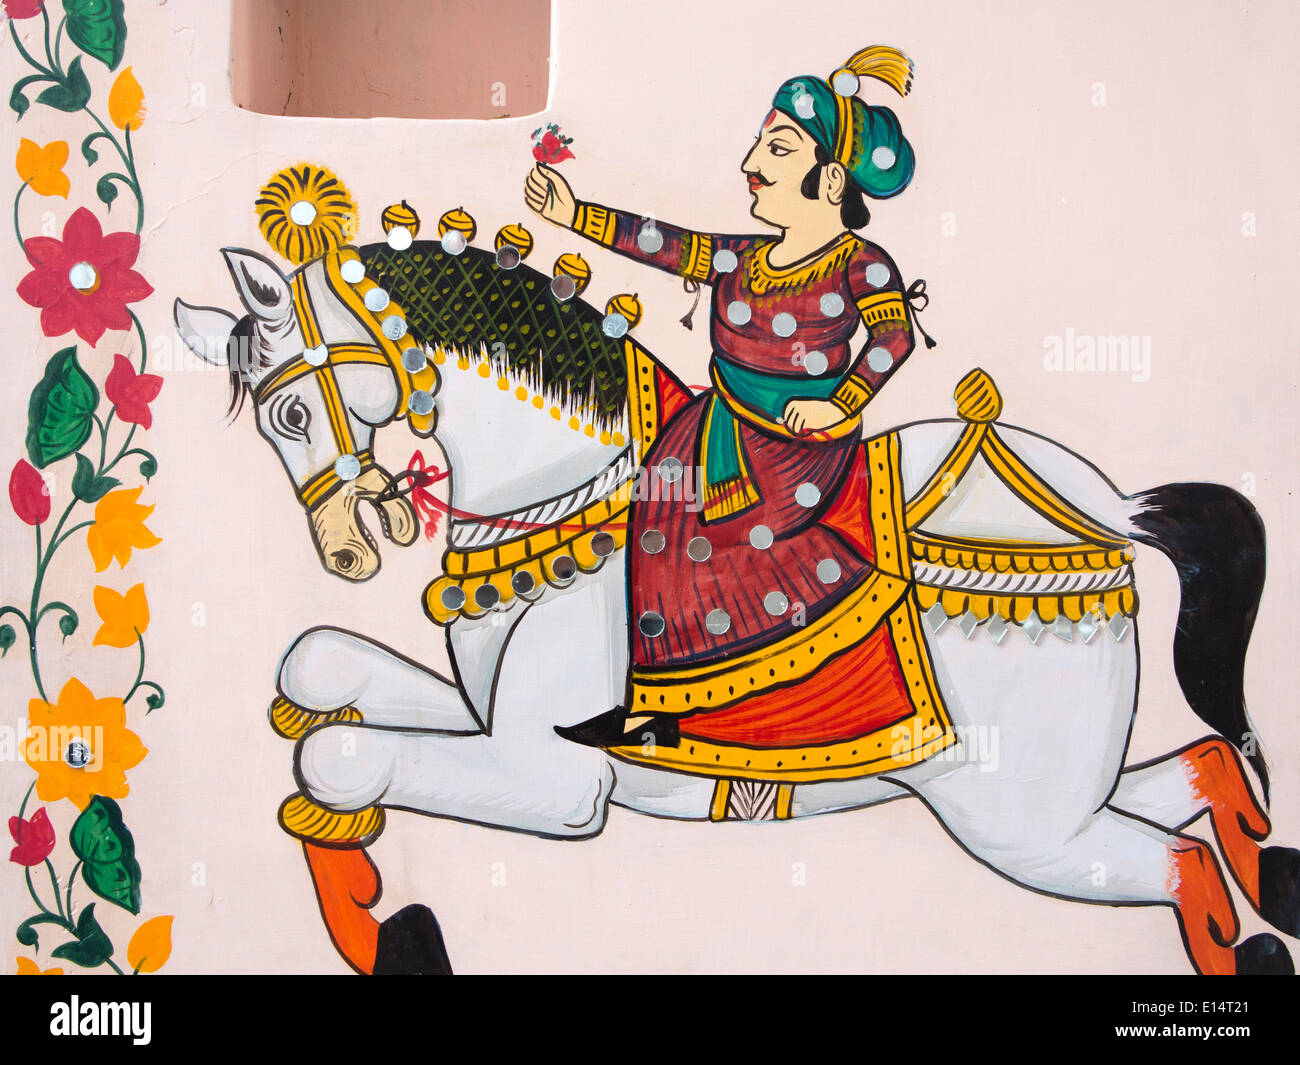 Rajput Wallpaper Hd Download India Rajasthan Udaipur Rajasthani Folk Art Wall